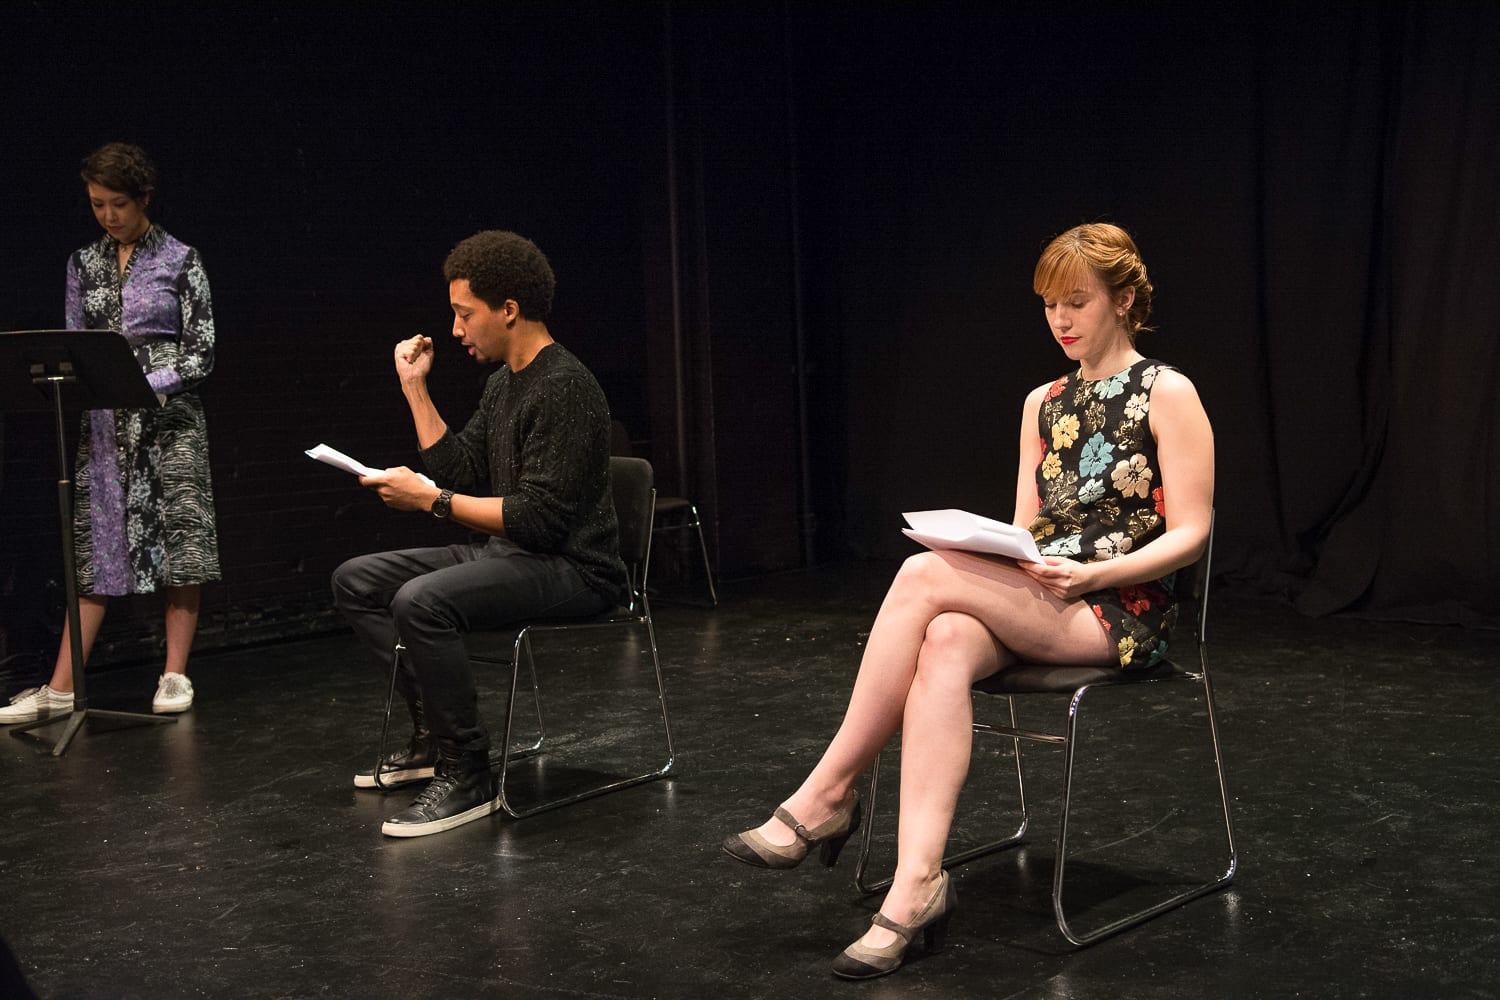 Acting Workshops NYC: A Great Way to Add to Your Resume